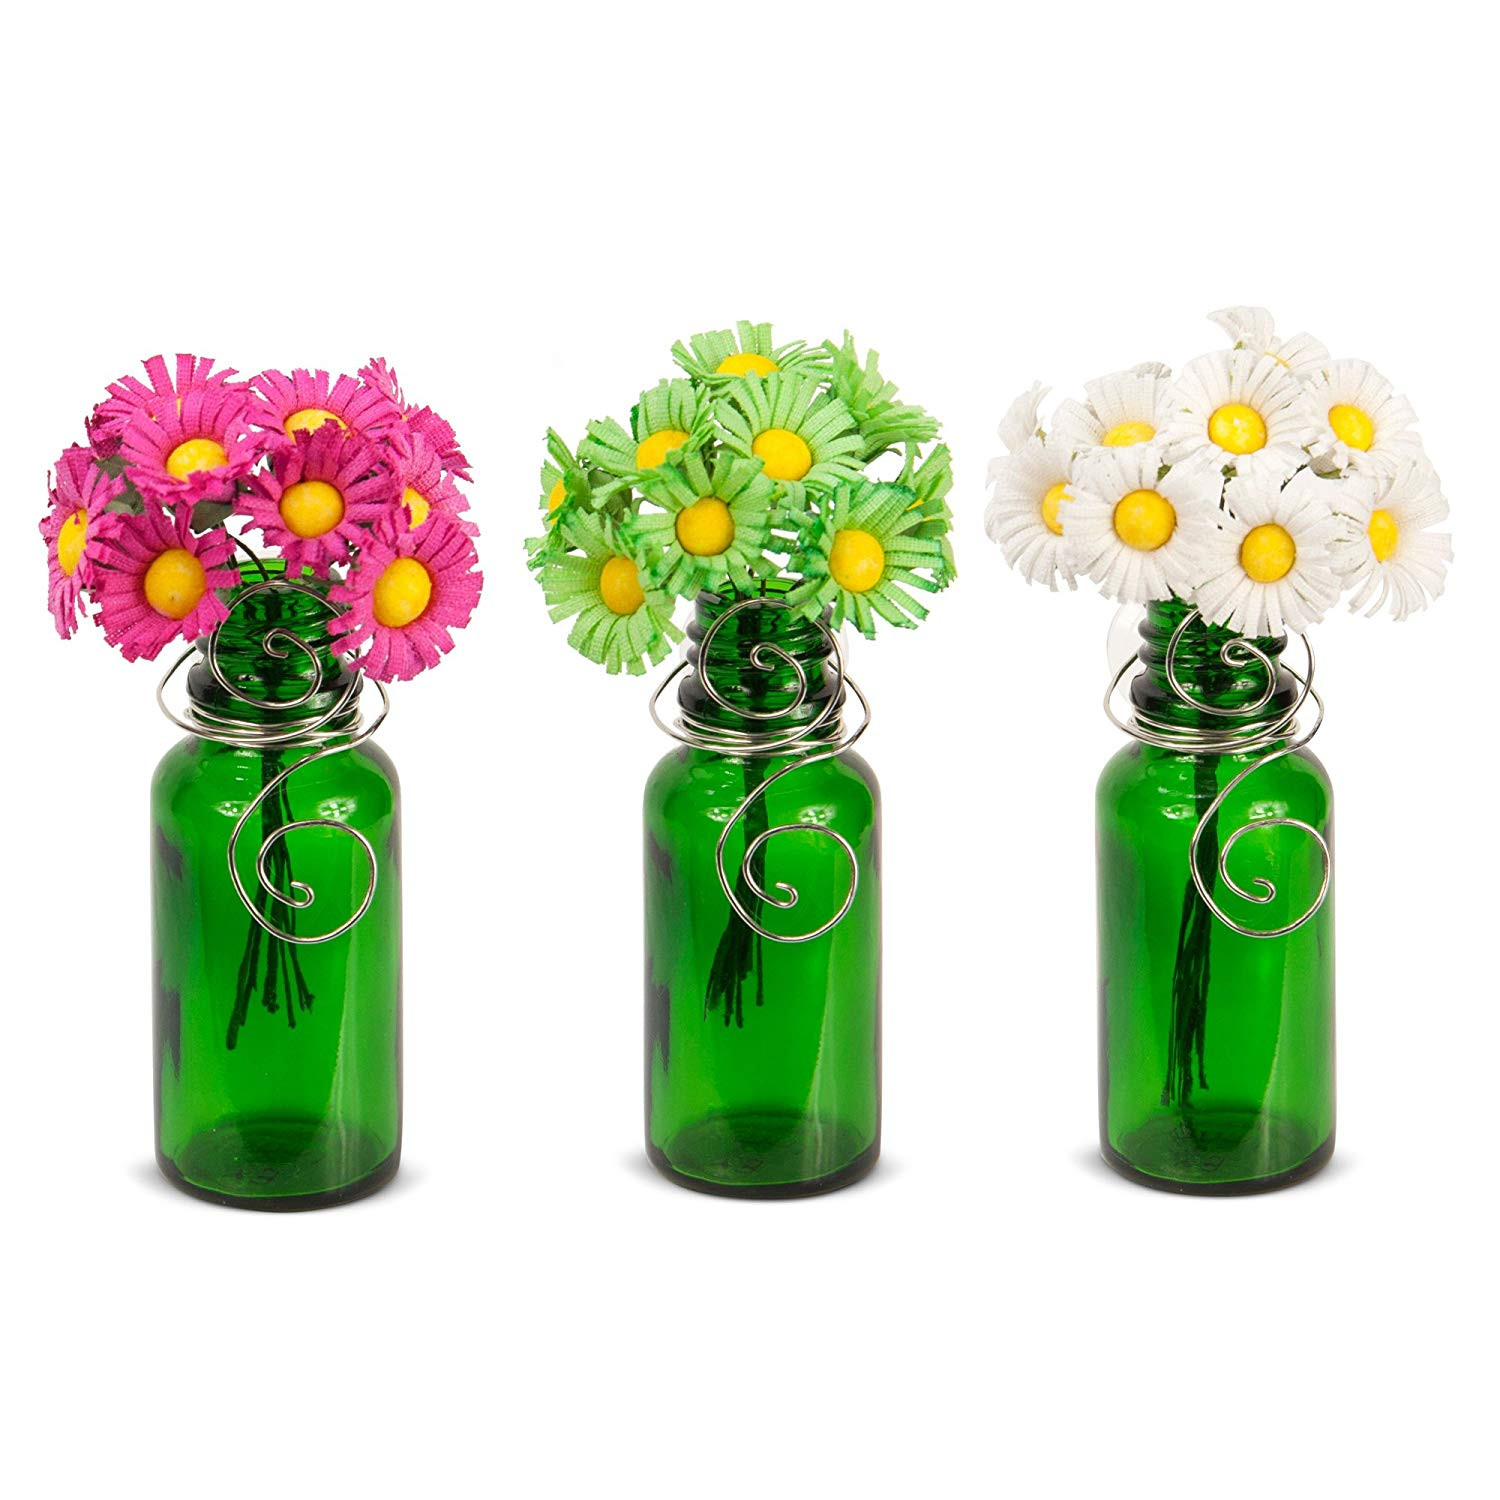 Small Metal Flower Vases Of Amazon Com Vazzini Mini Vase Bouquet Suction Cup Bud Bottle with Regard to Amazon Com Vazzini Mini Vase Bouquet Suction Cup Bud Bottle Holder with Flowers Decorative for Window Mirrors Tile Wedding Party Favor Get Well